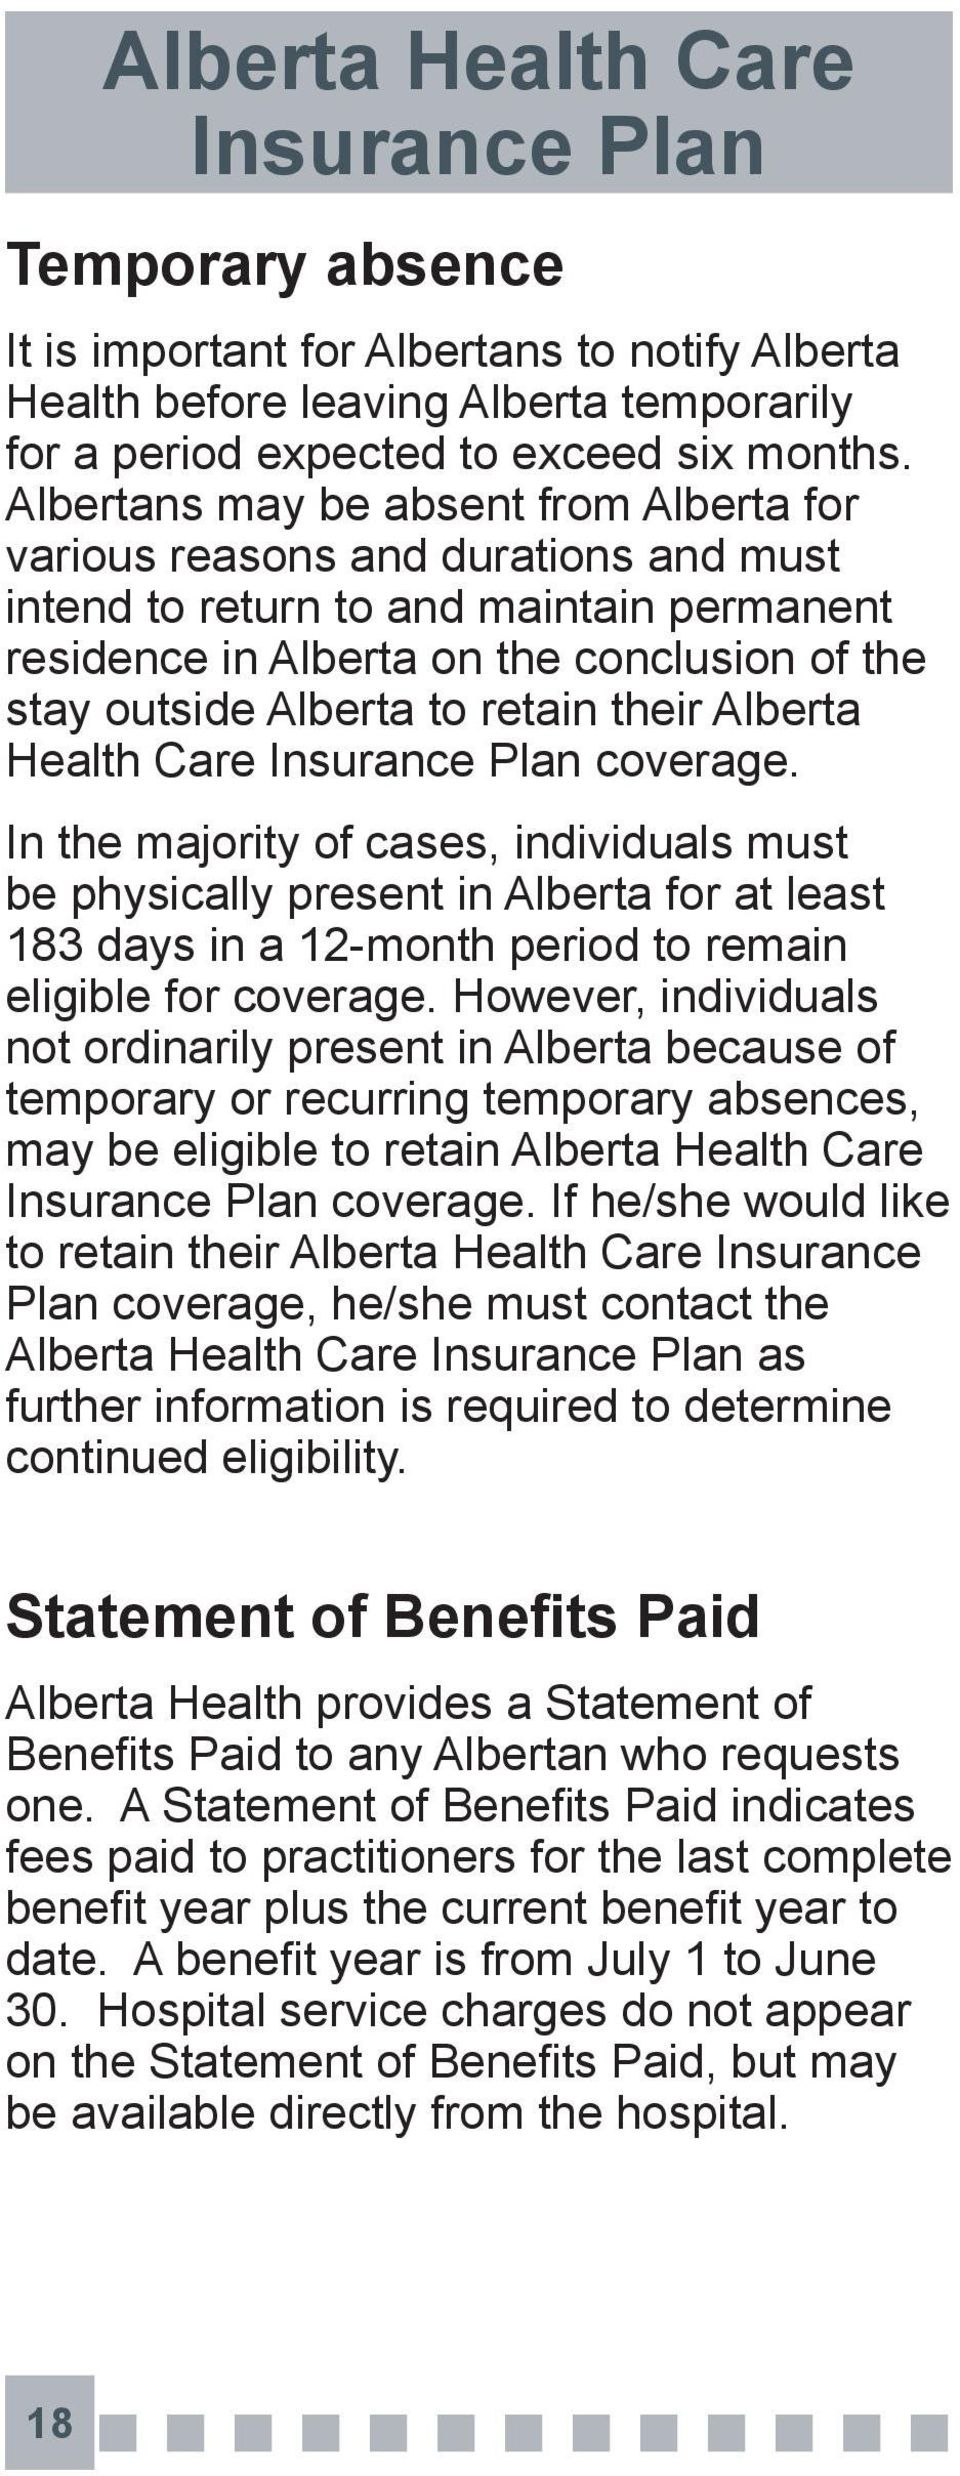 their Alberta Health Care coverage. In the majority of cases, individuals must be physically present in Alberta for at least 183 days in a 12-month period to remain eligible for coverage.